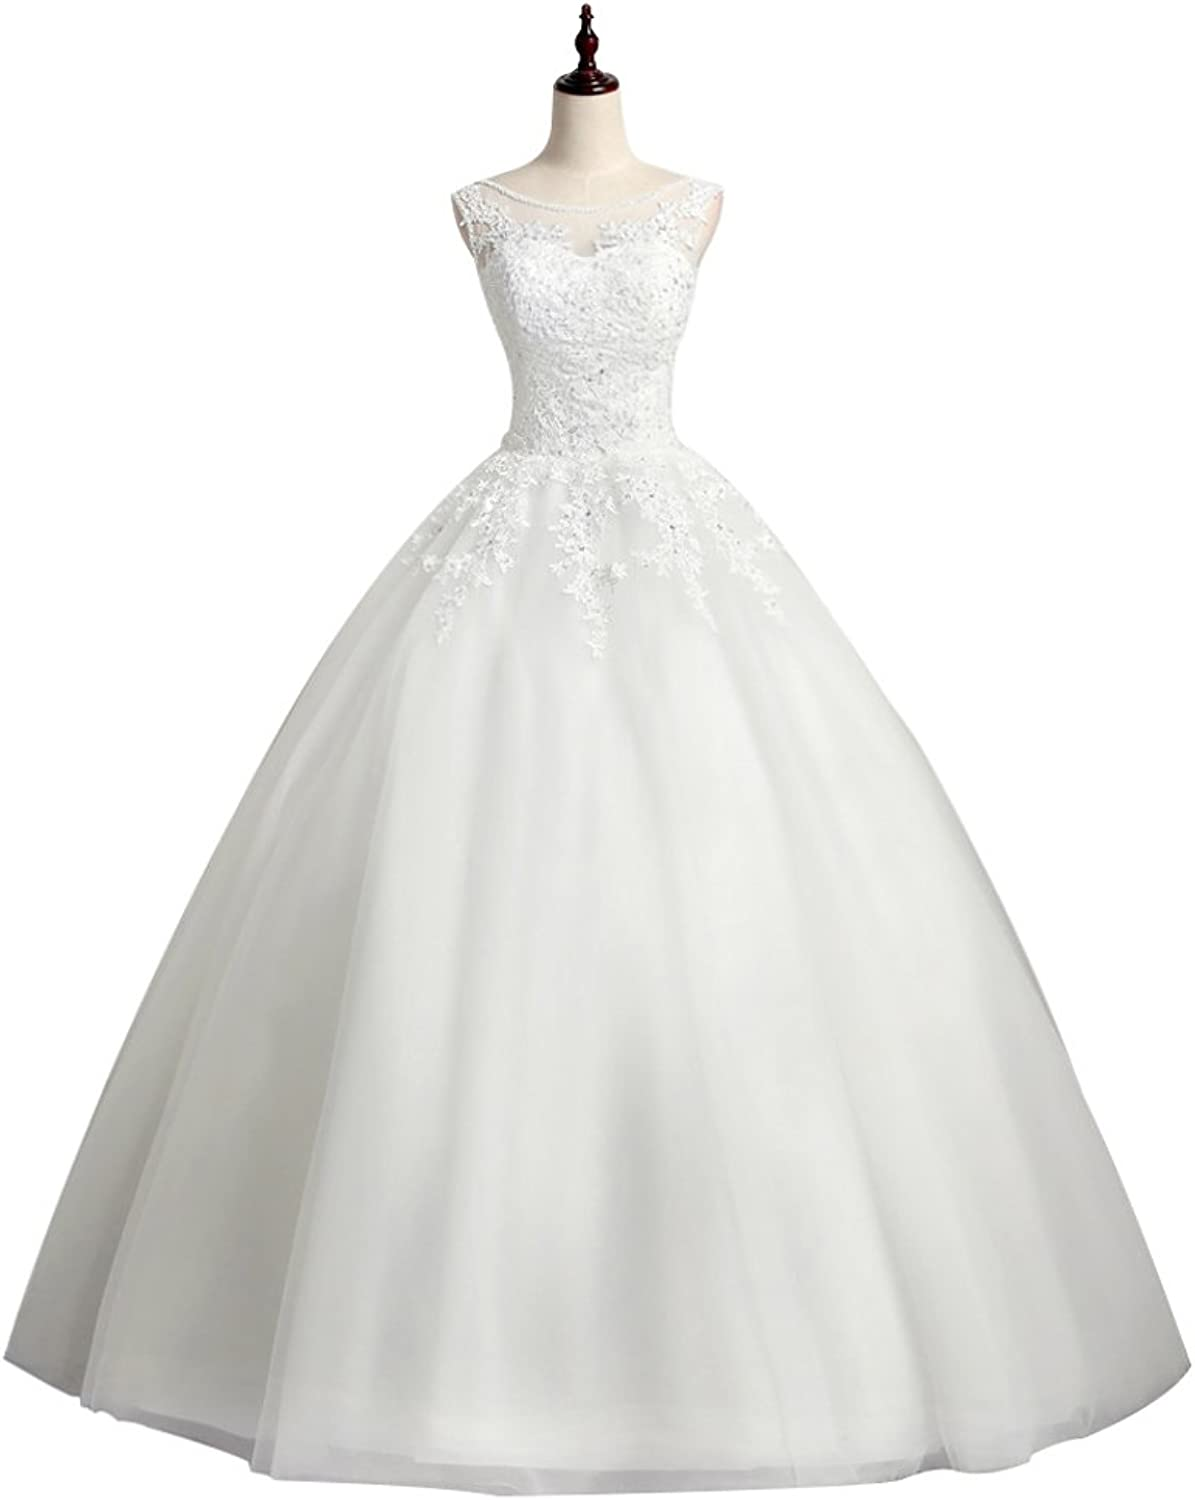 Fipink Women's Cap Sleeves A Line Lace Beaded Wedding Dresses for Bride